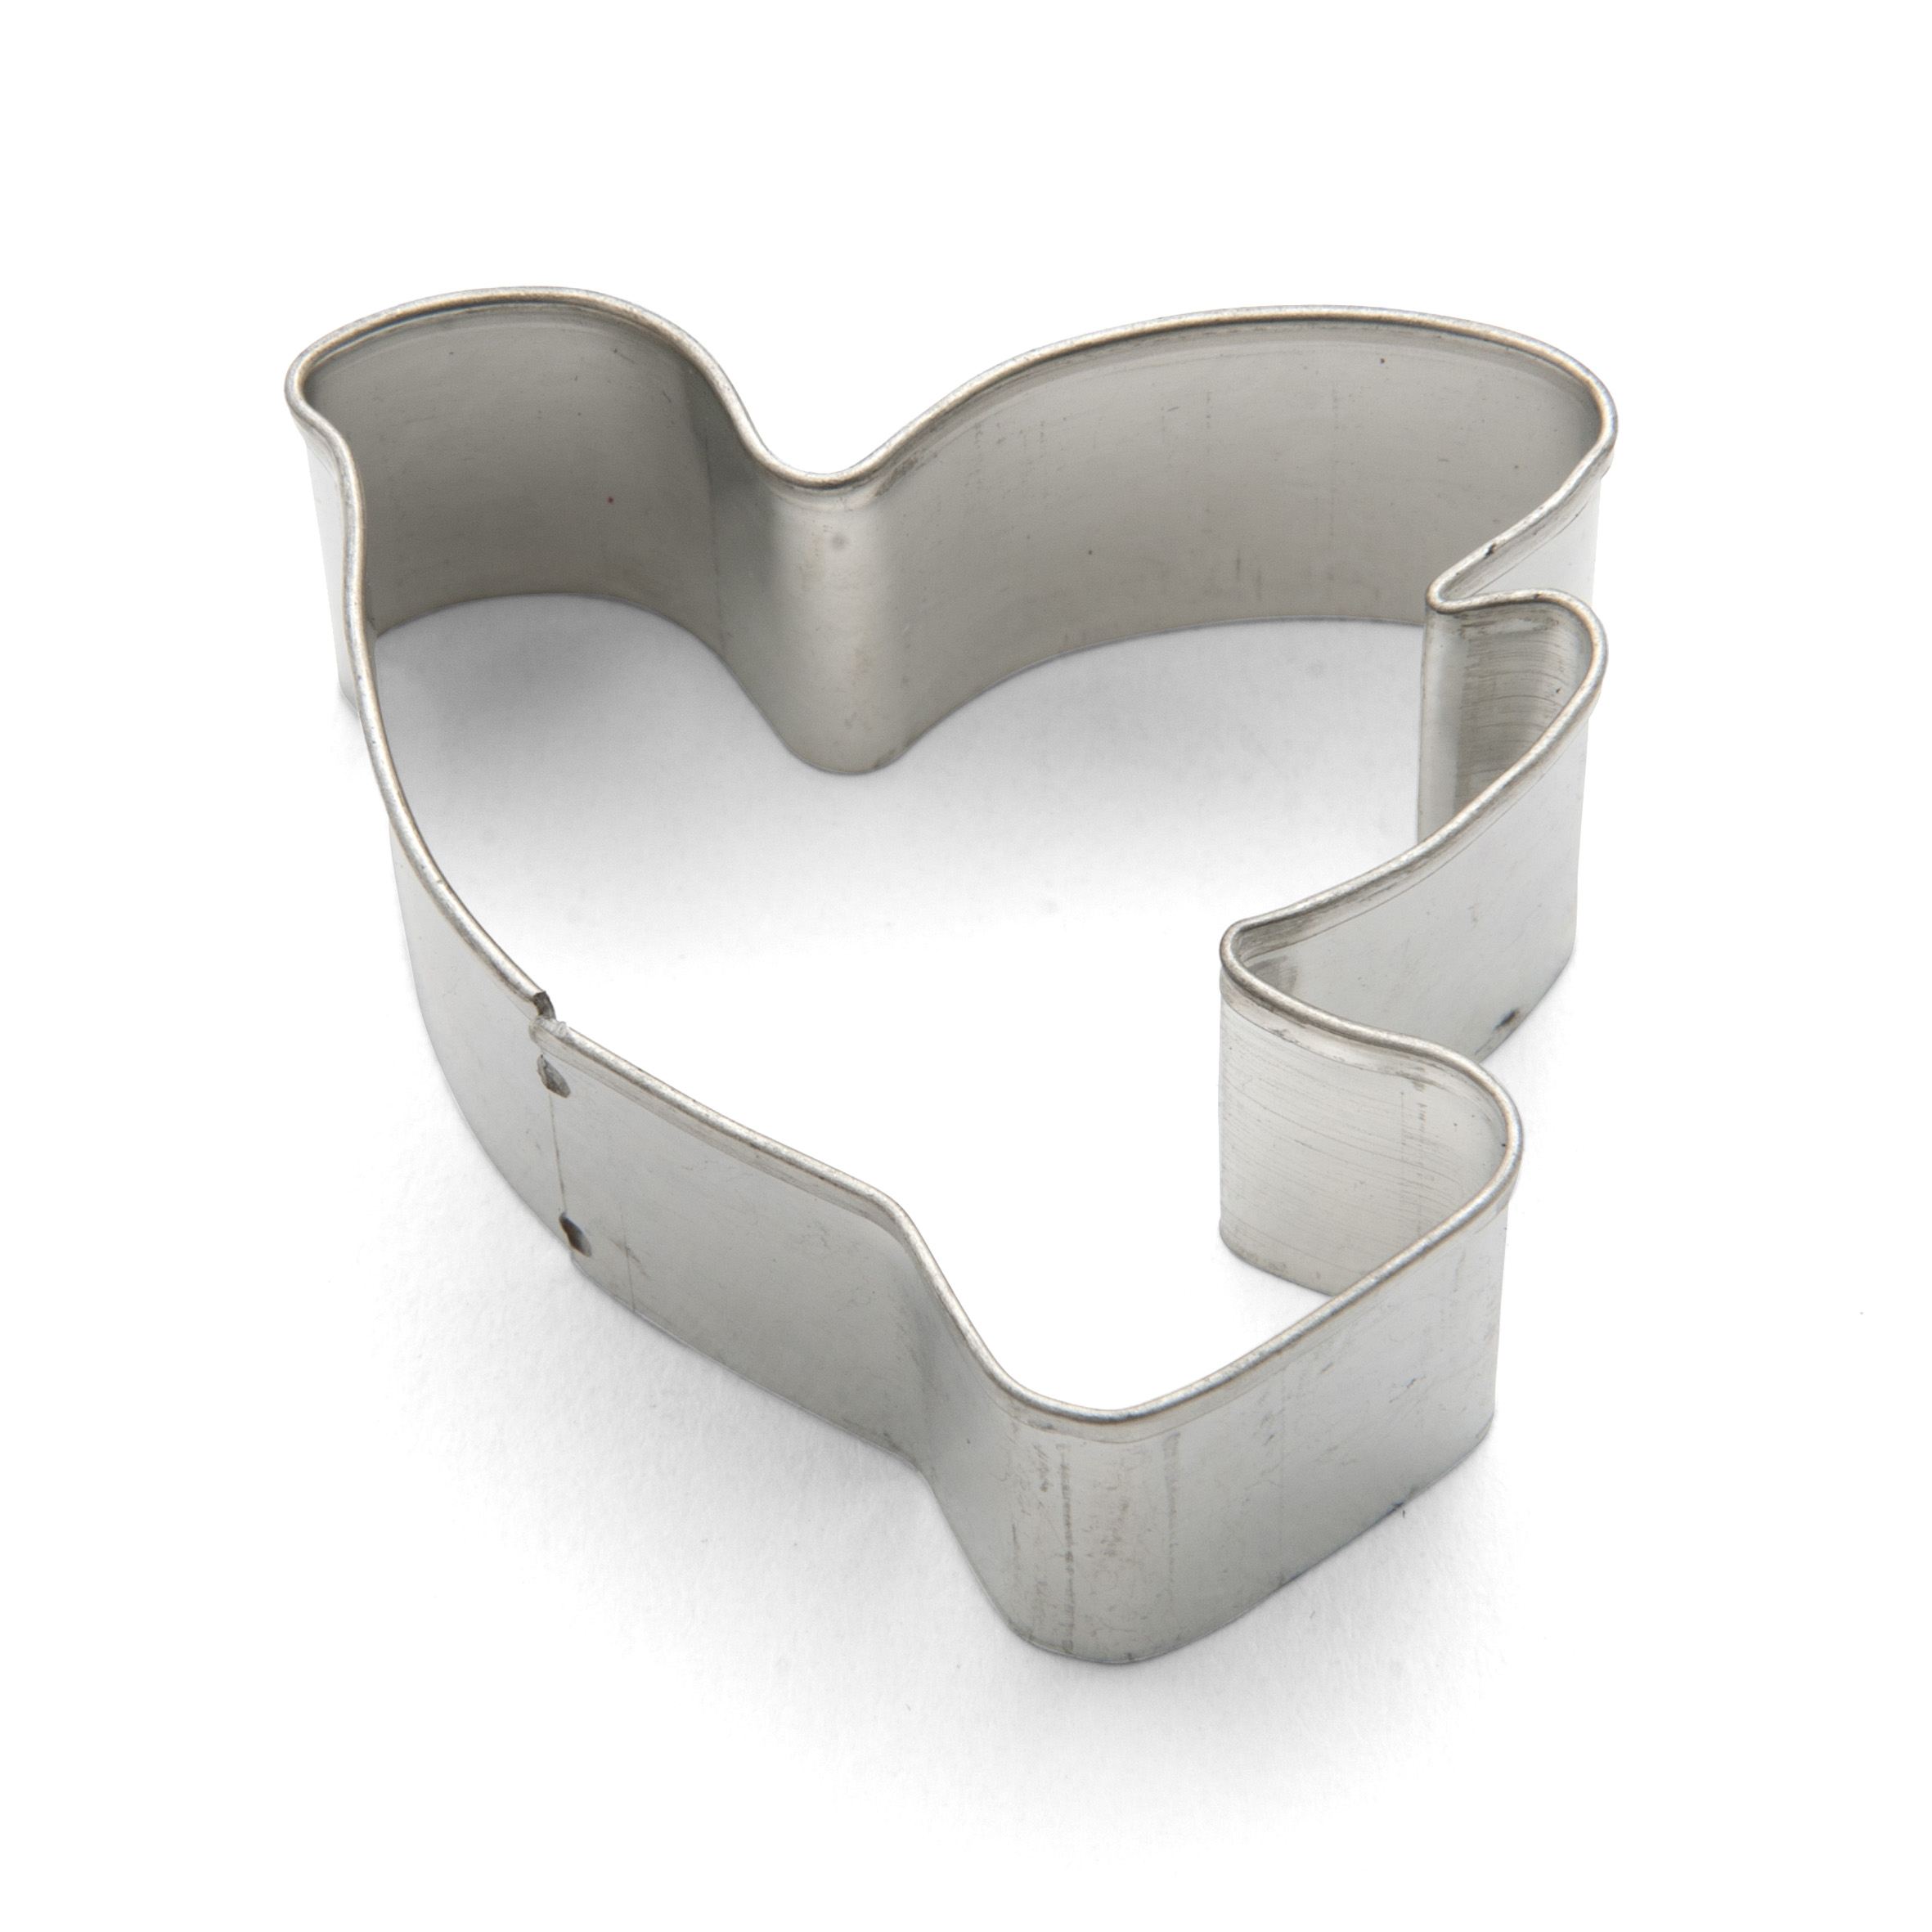 Dove mini cookie cutter